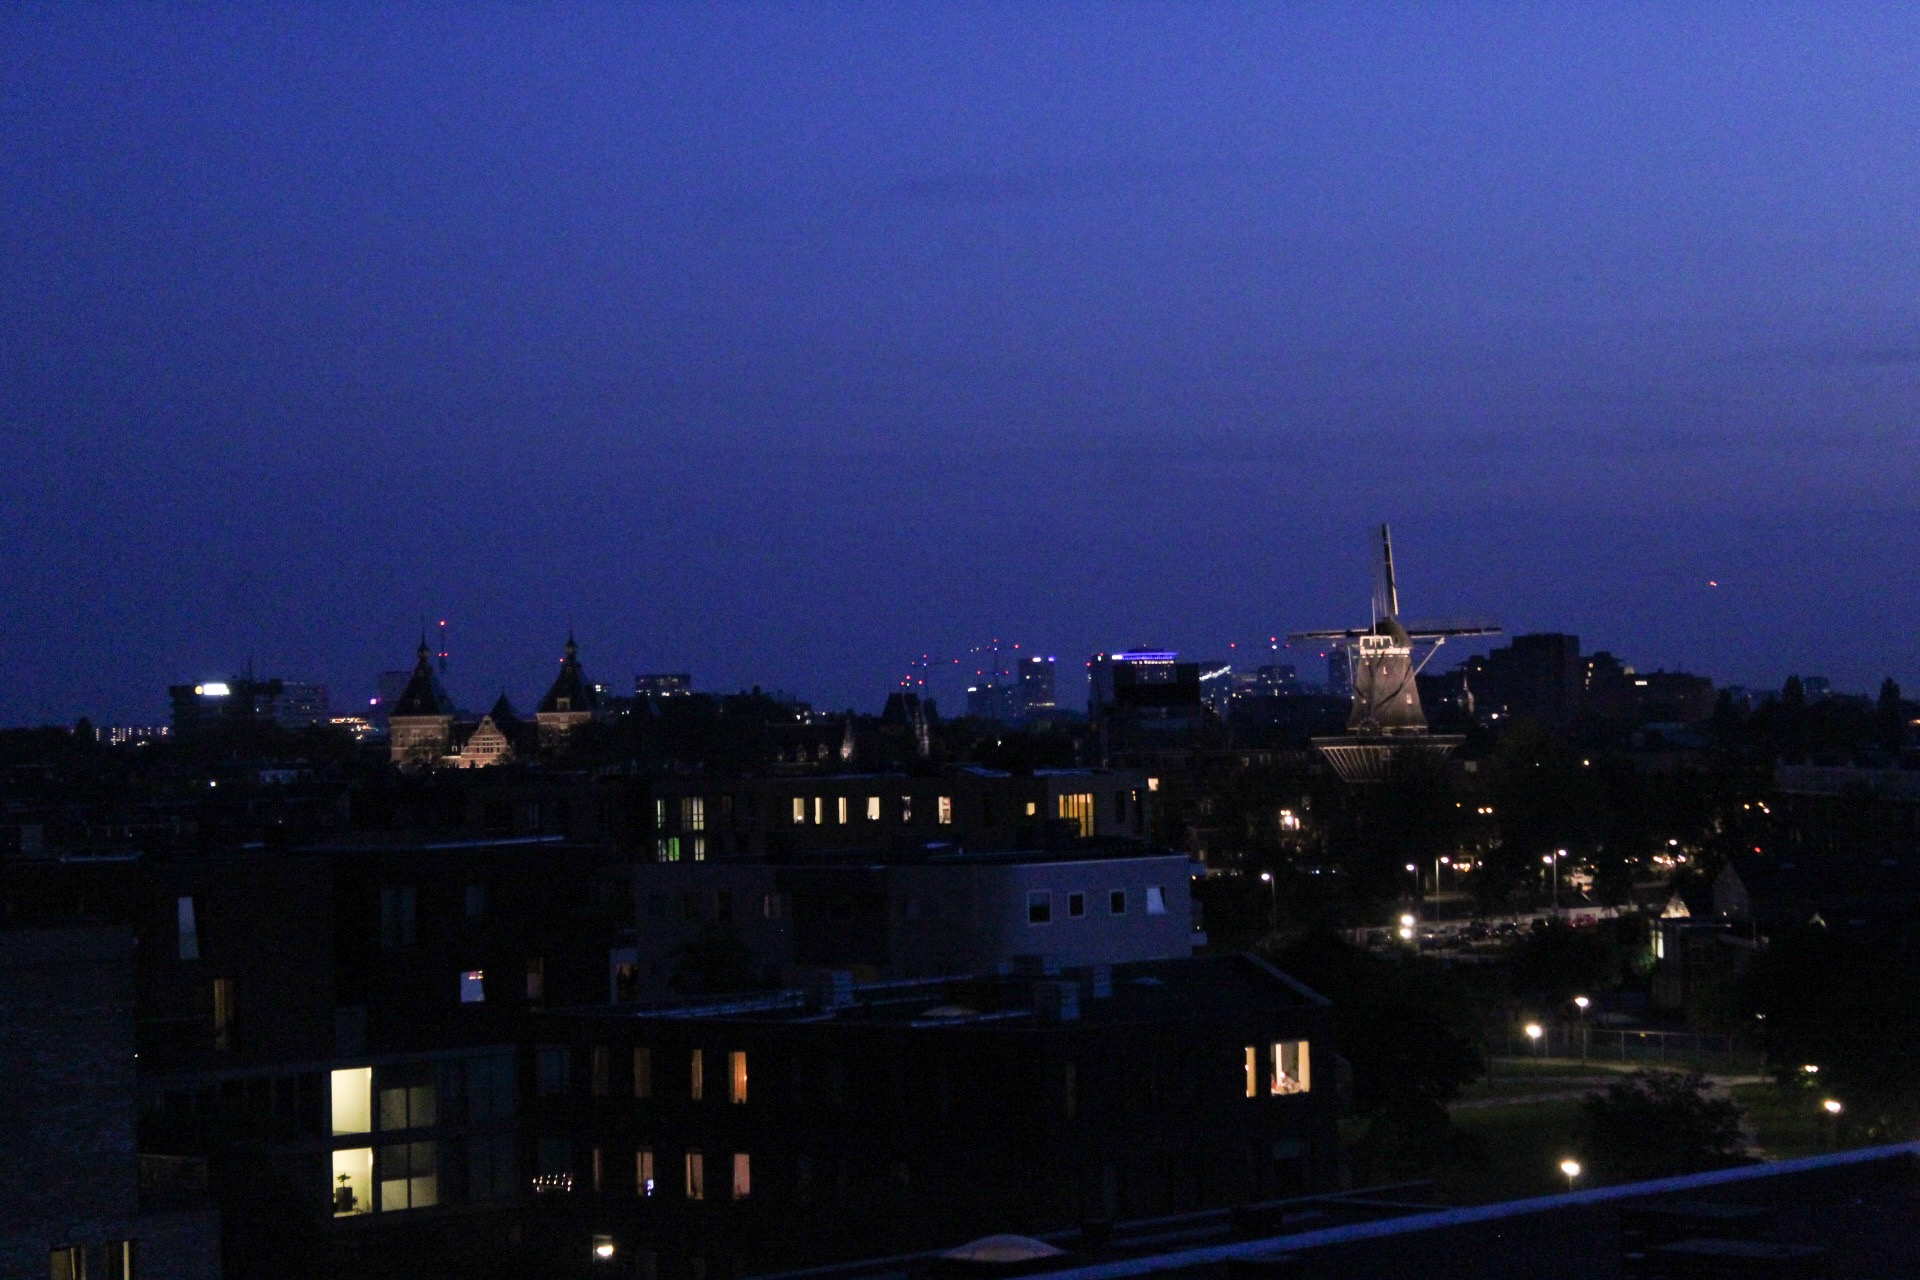 My view of Amsterdam.